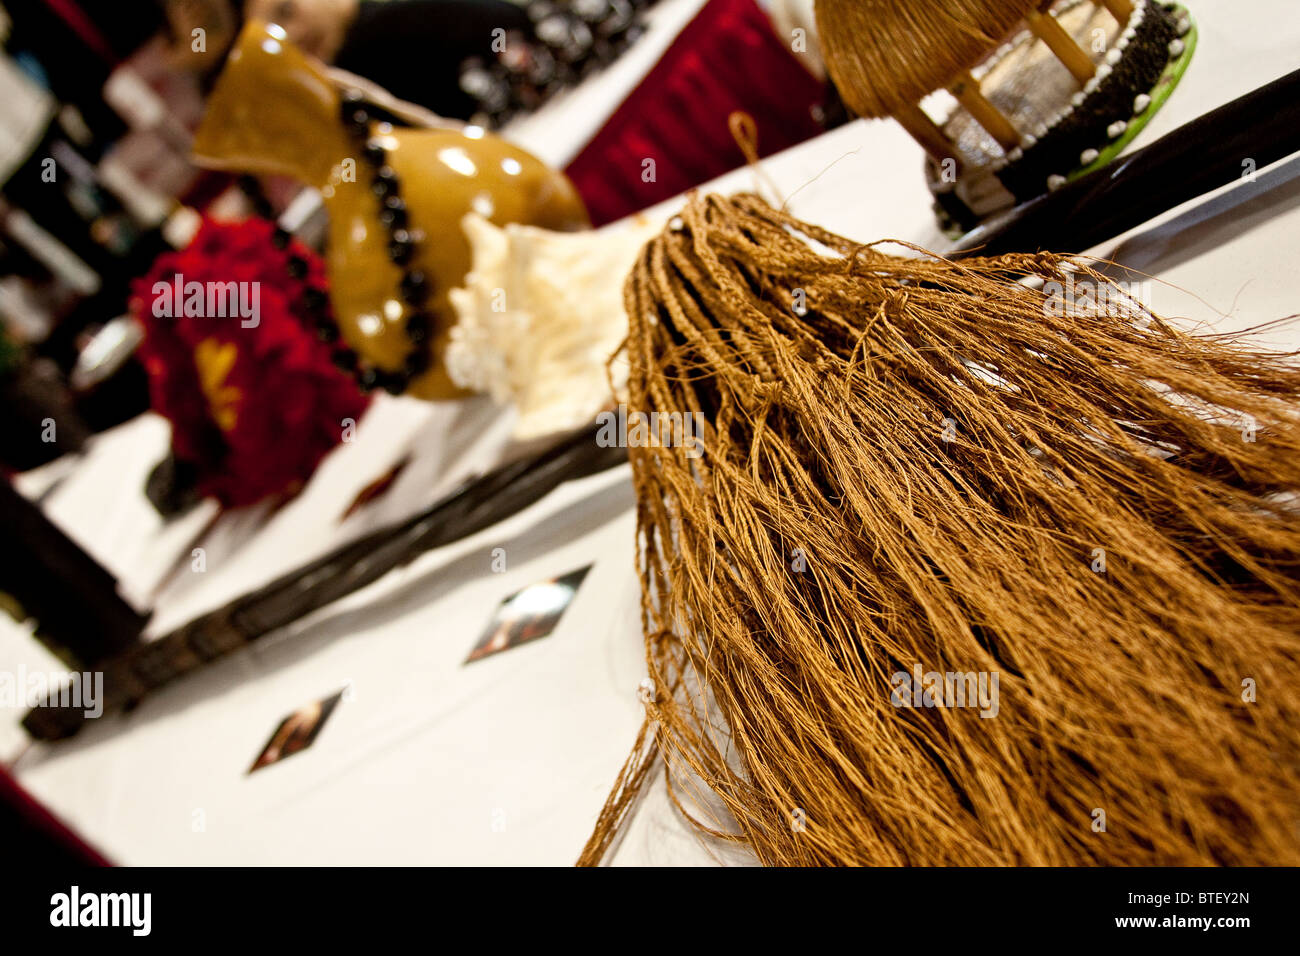 Samoan ritual tools, to be used when tattooing. - Stock Image